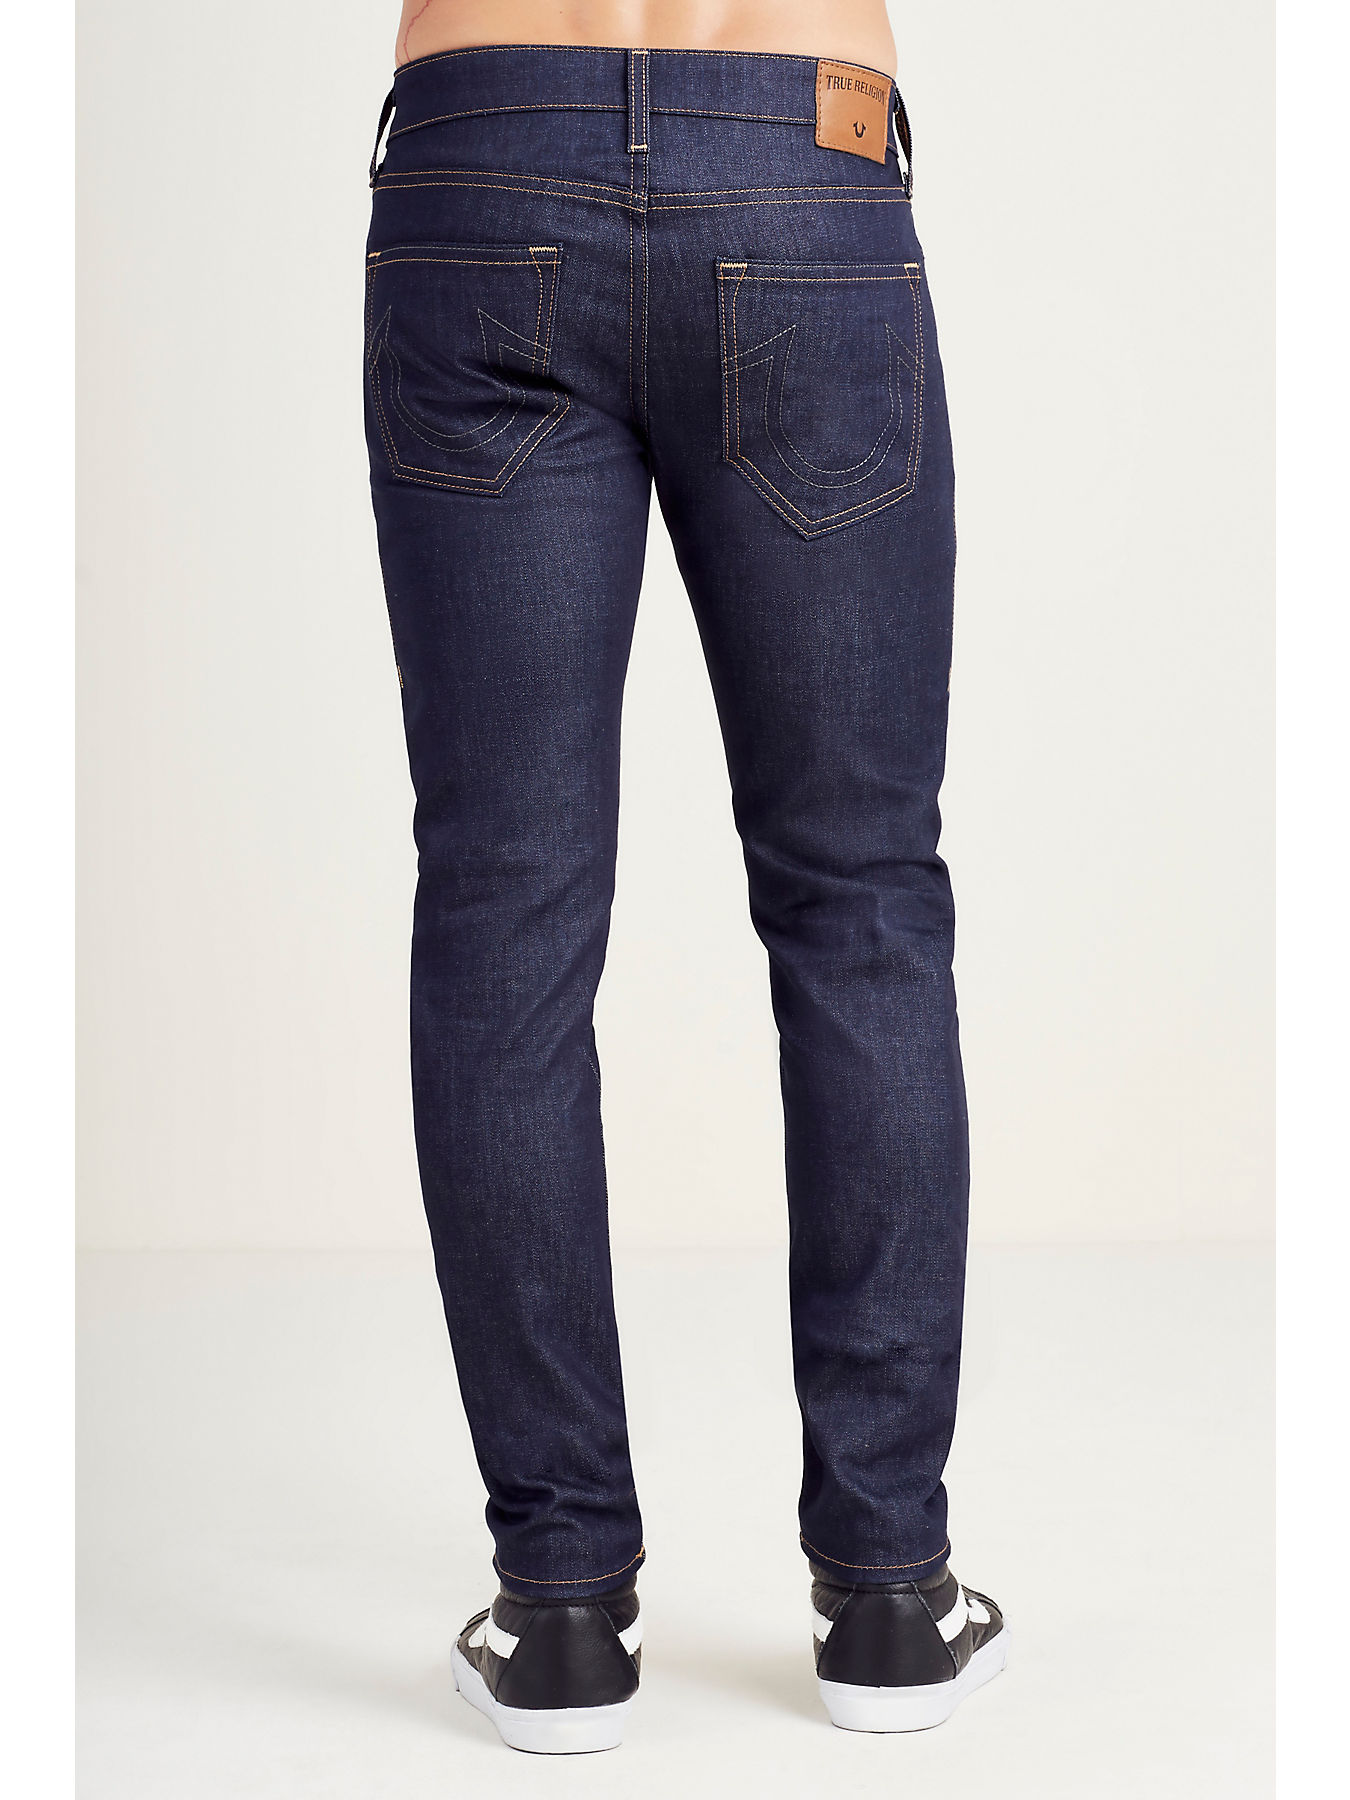 a24956eec TONY SHORT INSEAM SKINNY MENS JEAN - True Religion